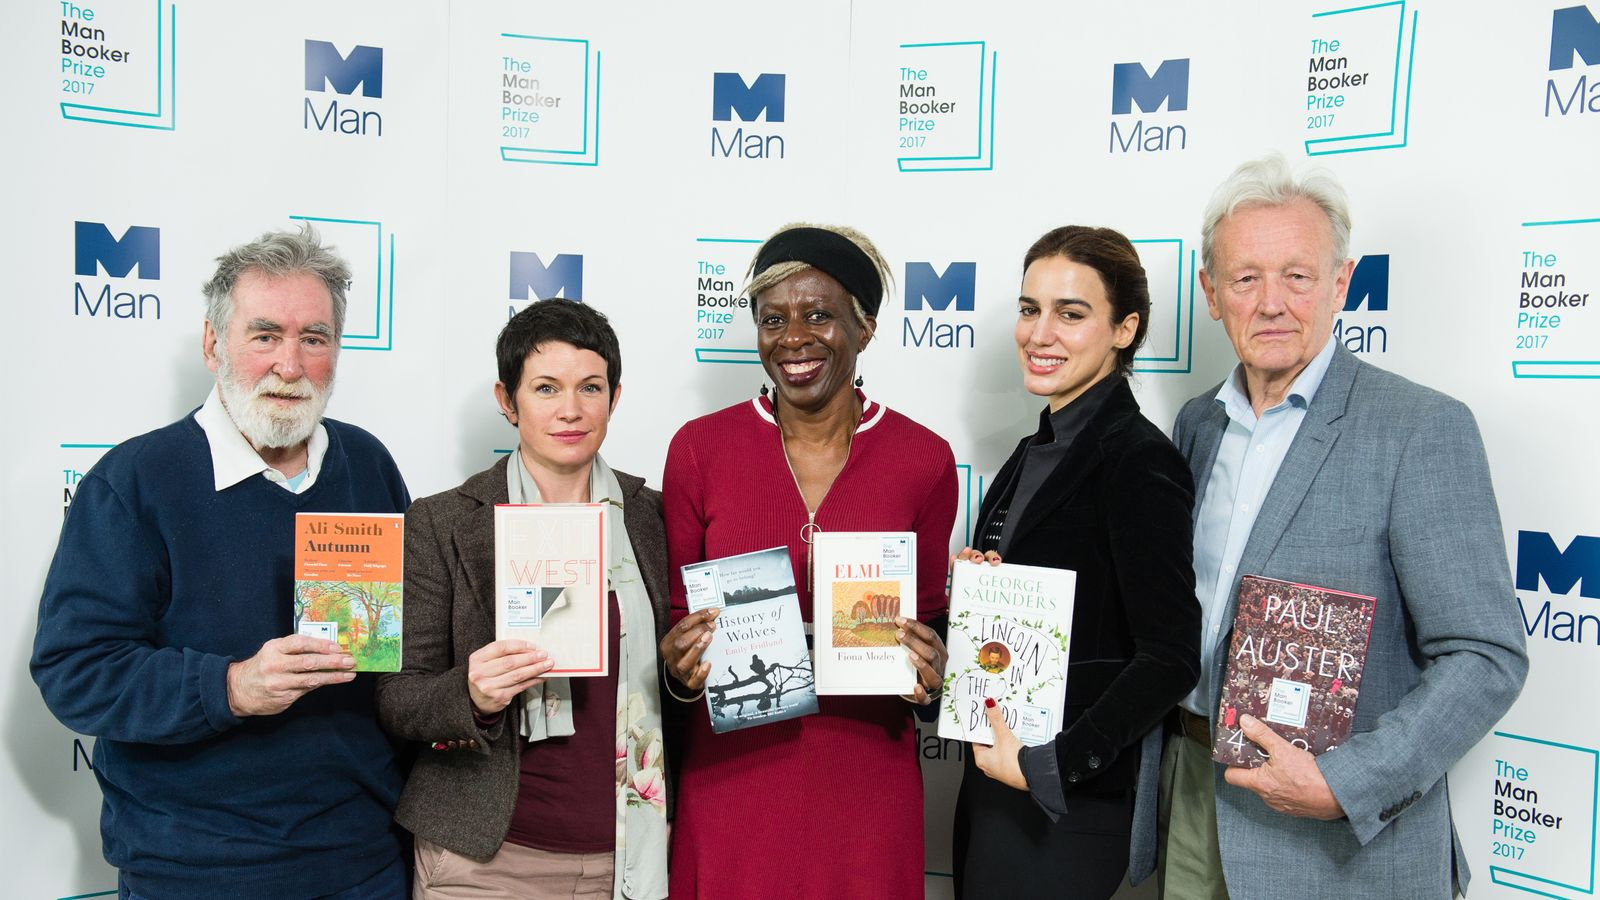 the booker prize should not be opened to american writers Man booker prize longlist revealed with us writers included for the first time longlist of 13 books vying for prestigious literary award announced today.